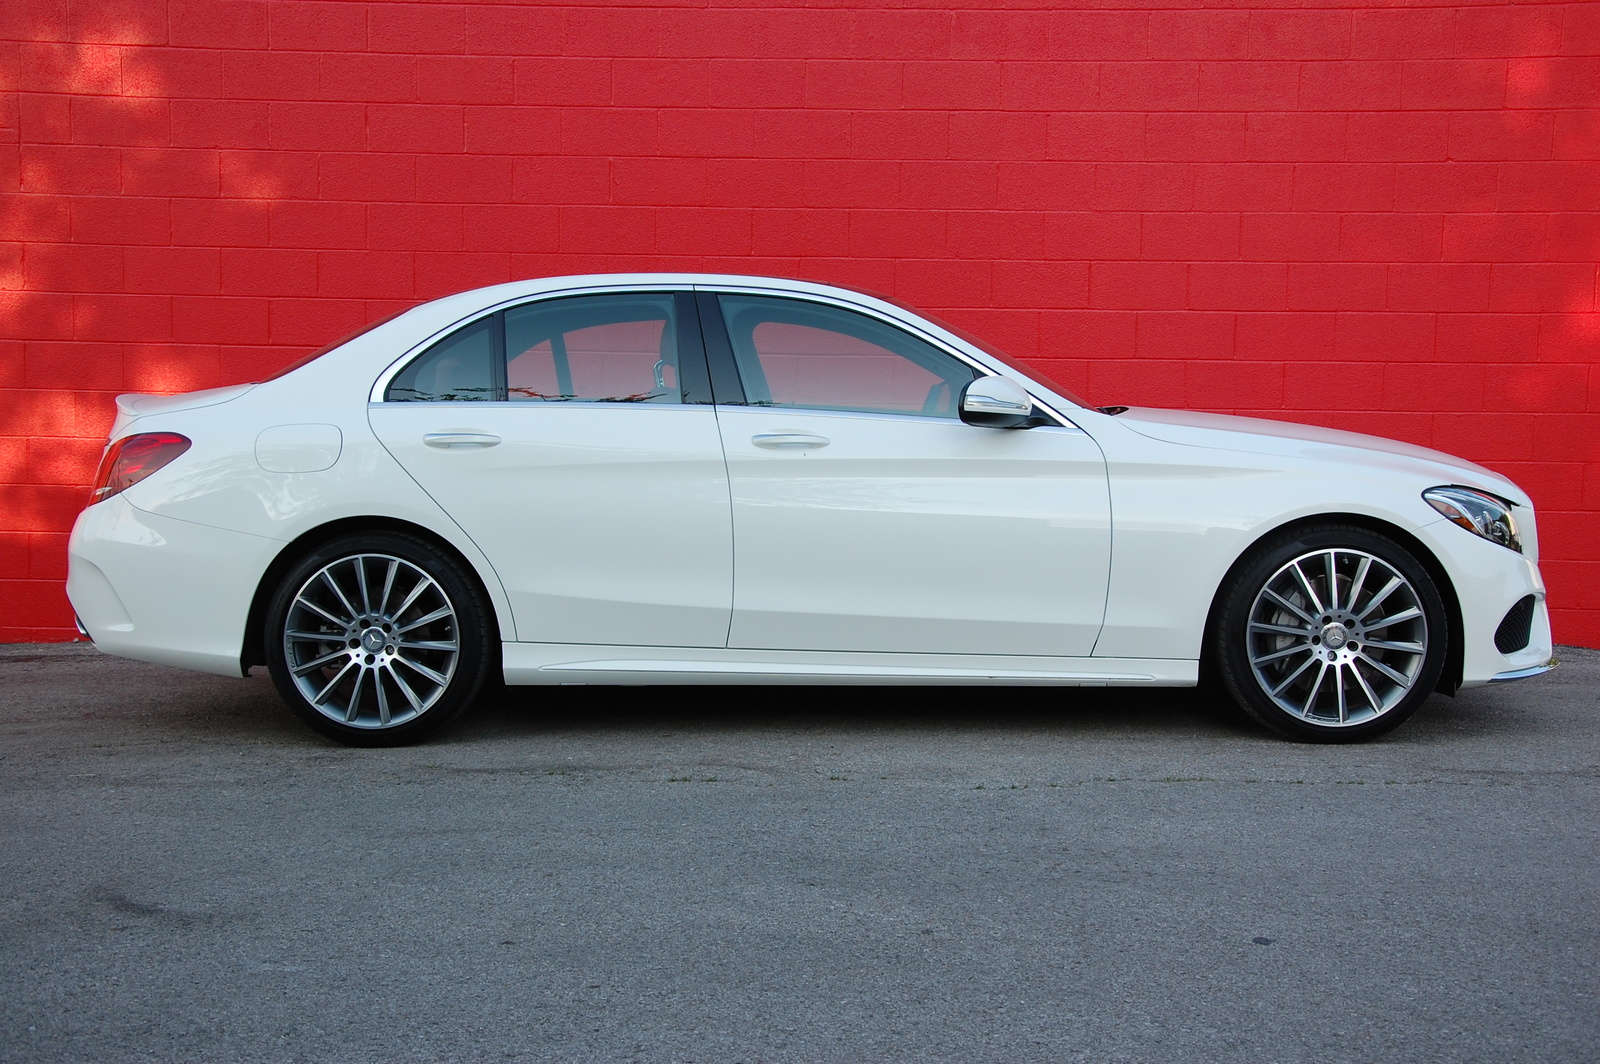 How much will the c400 mercedes cost in canada 2014 2017 for How much is a 2014 mercedes benz